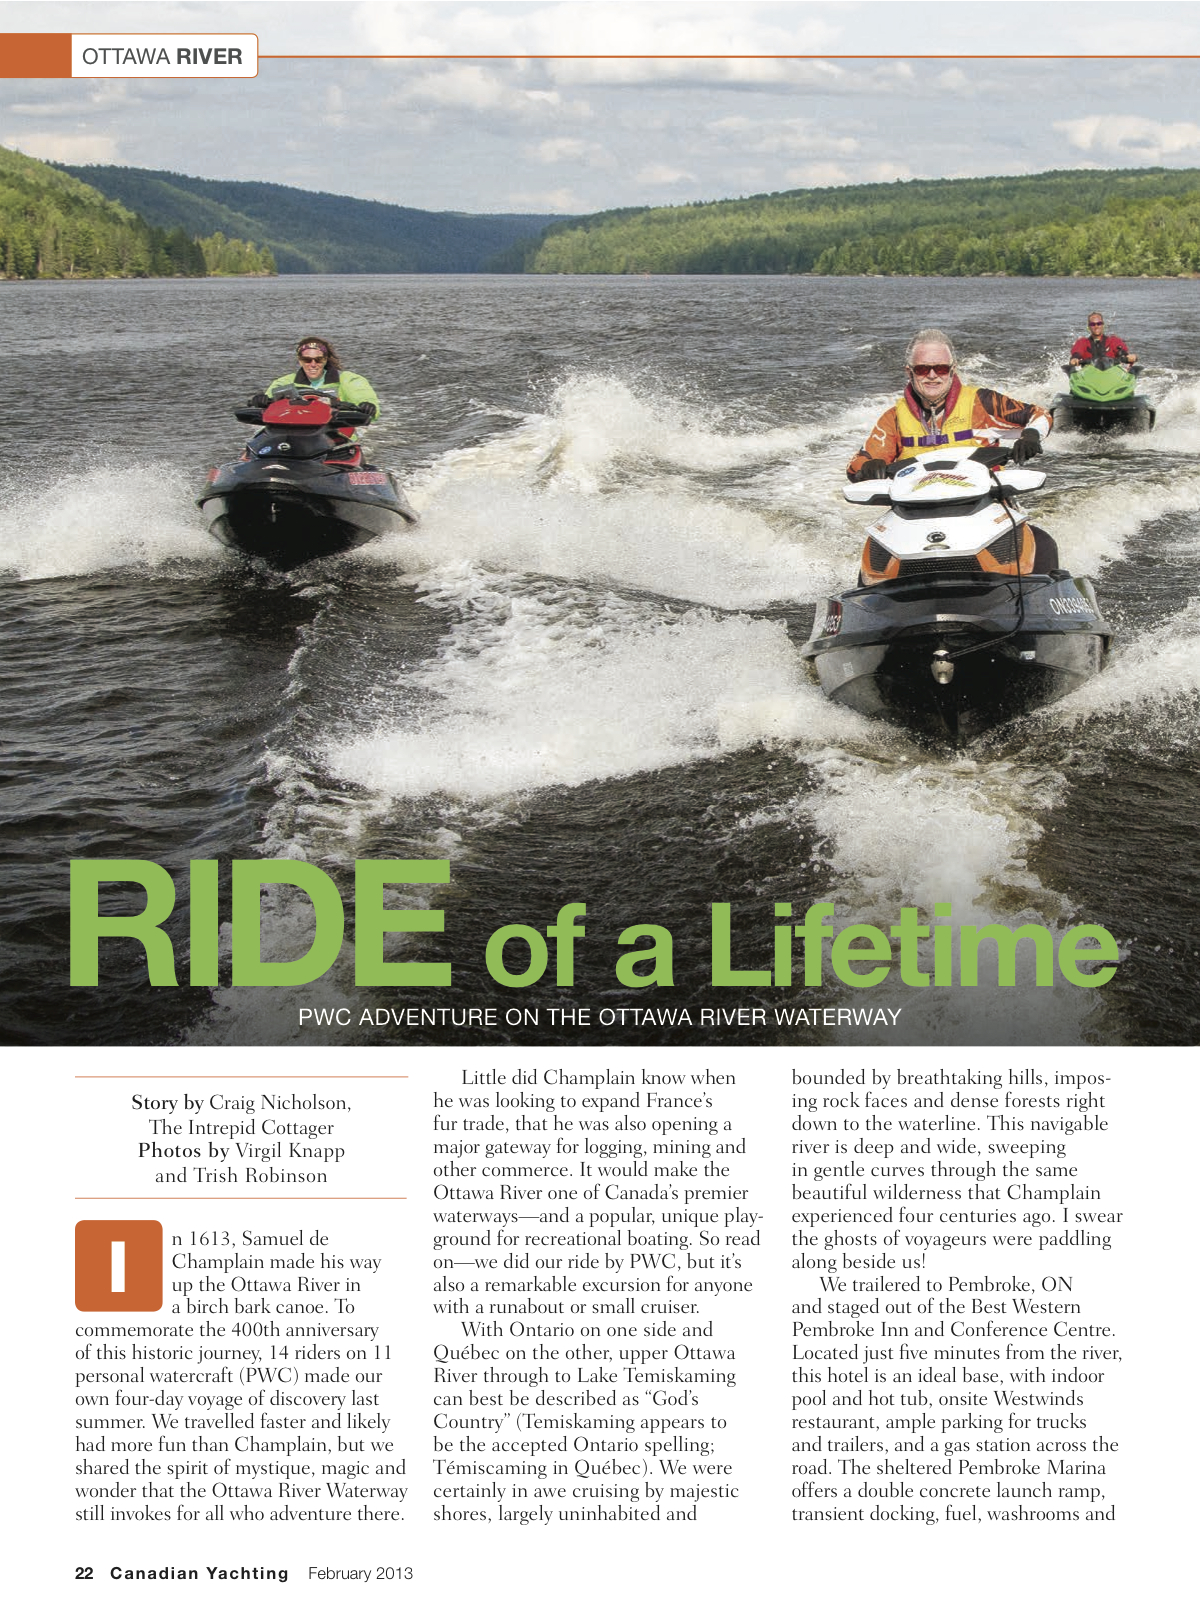 PDF of article on Ottawa River Sea Doo Tour